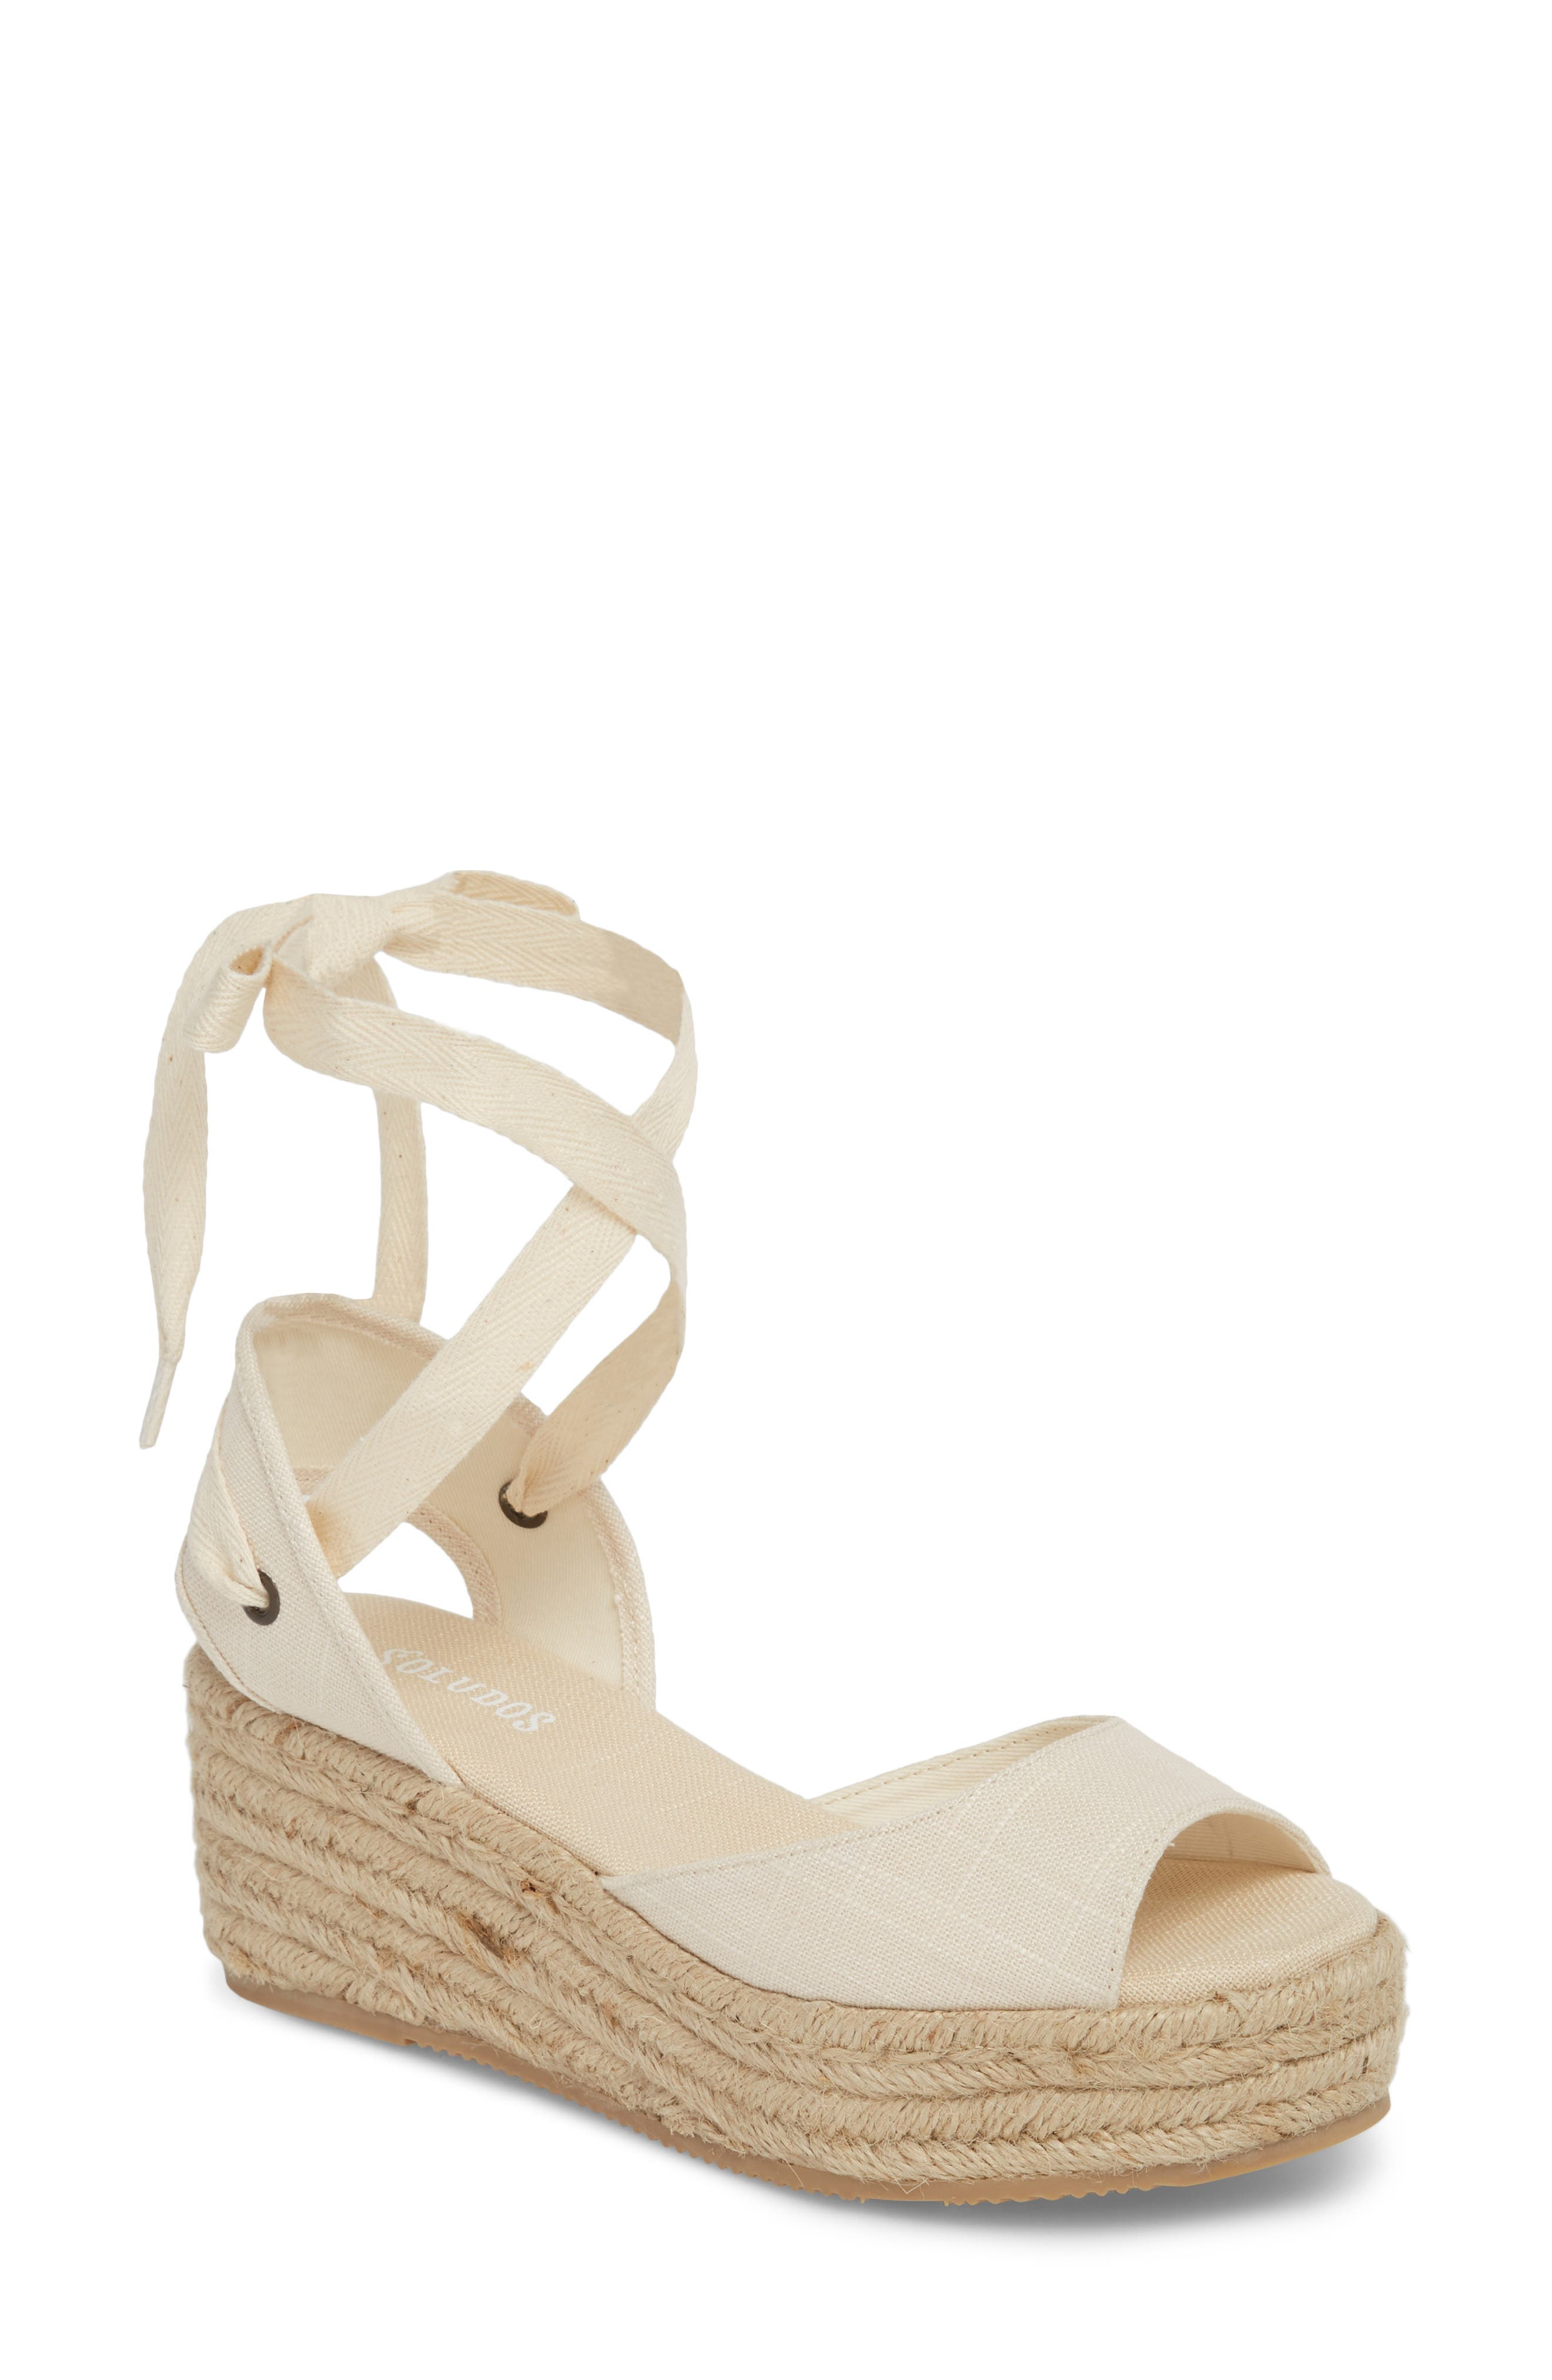 Espadrille Platform Sandal,                         Main,                         color, BLUSH FABRIC